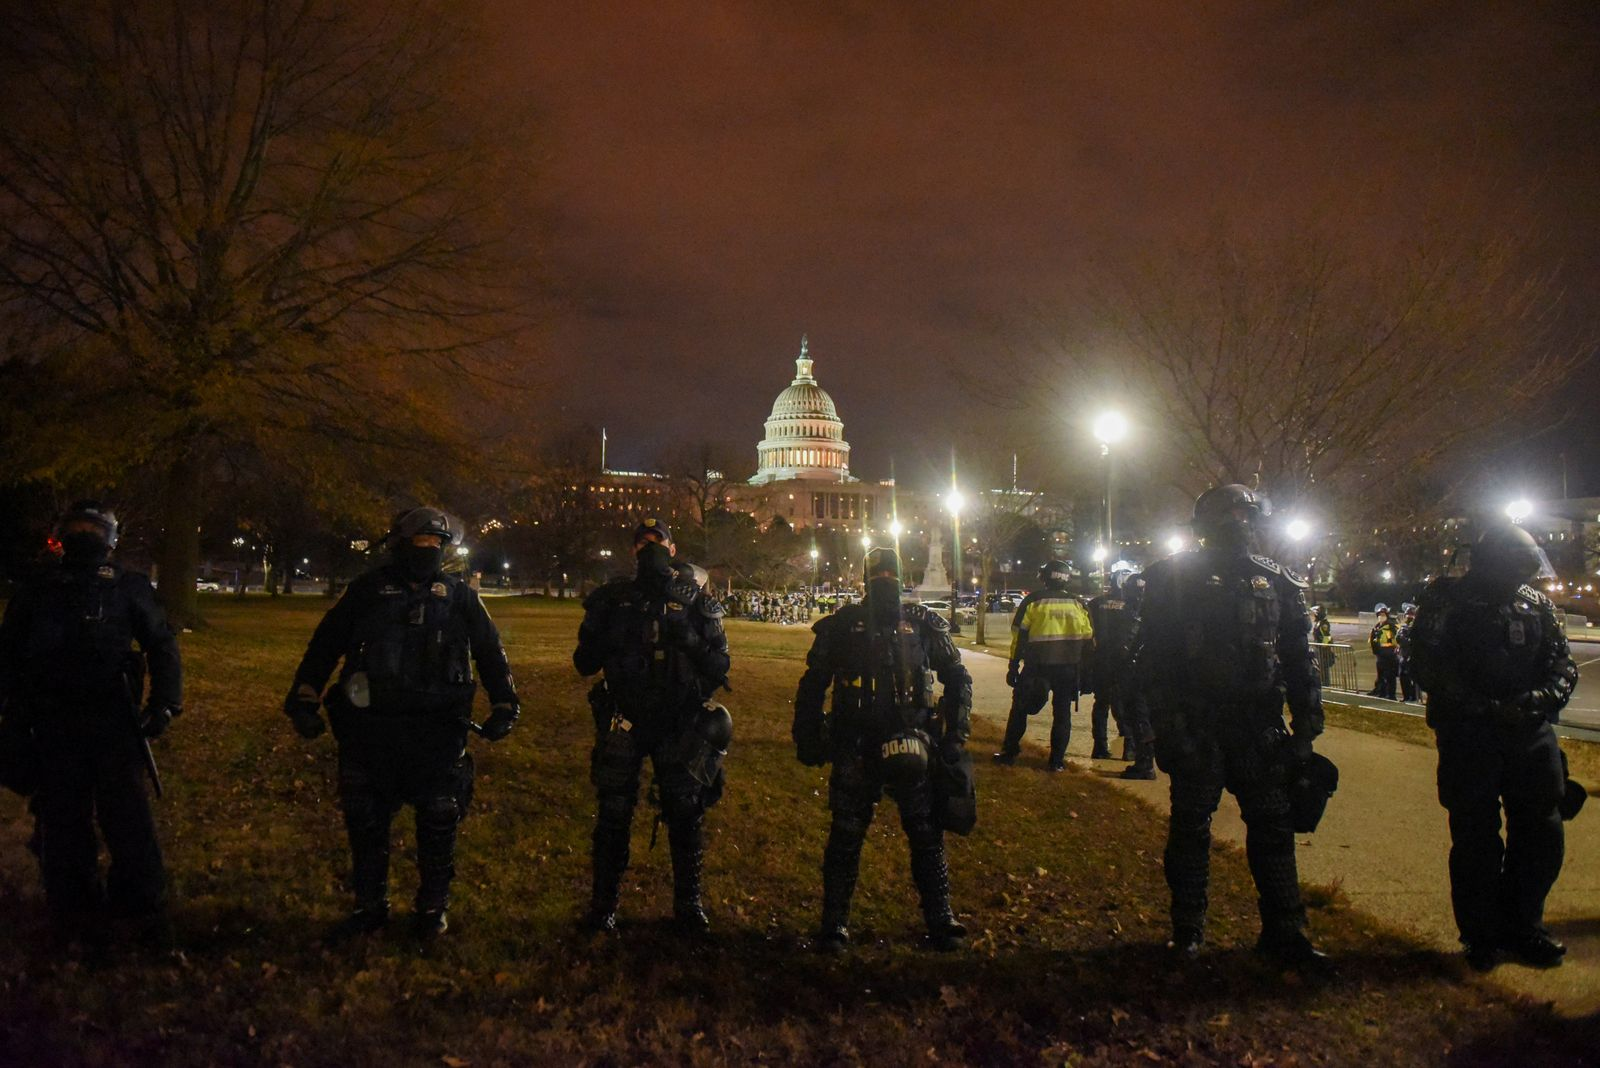 FILE PHOTO: Security forces stand guard as the surroundings of the U.S. Capitol are empty during a curfew in Washington